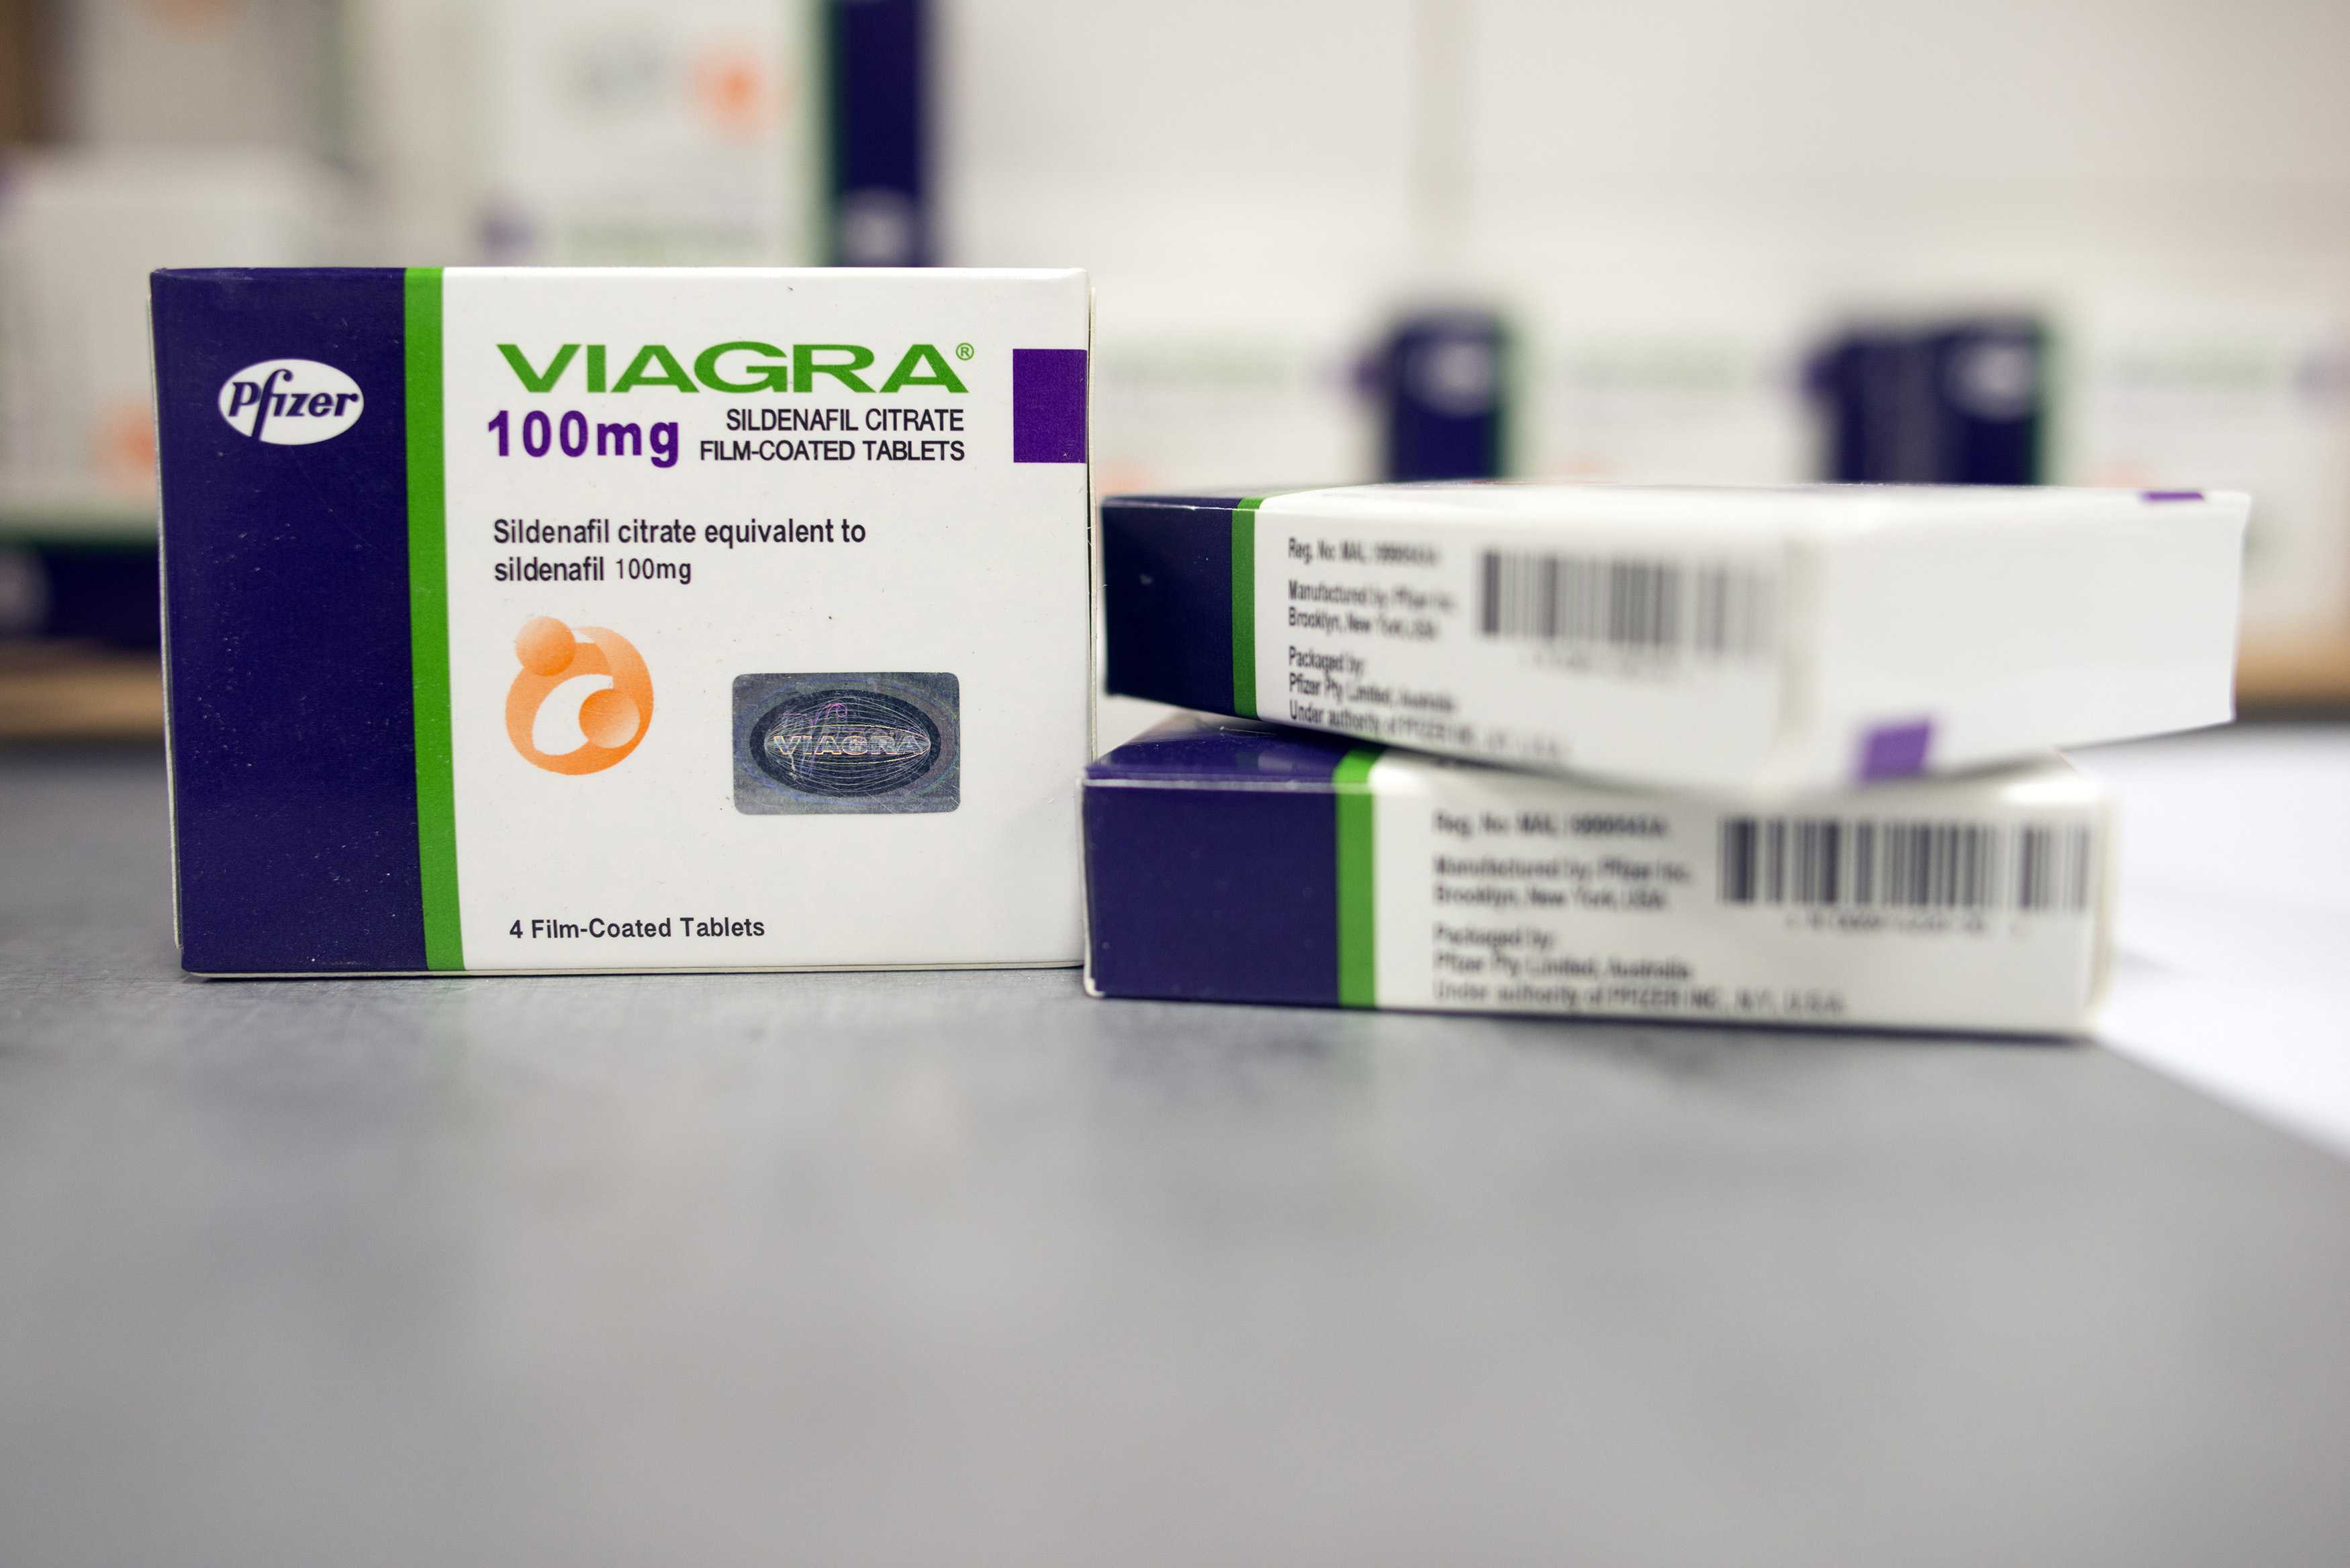 What pharmaceutical company makes viagra